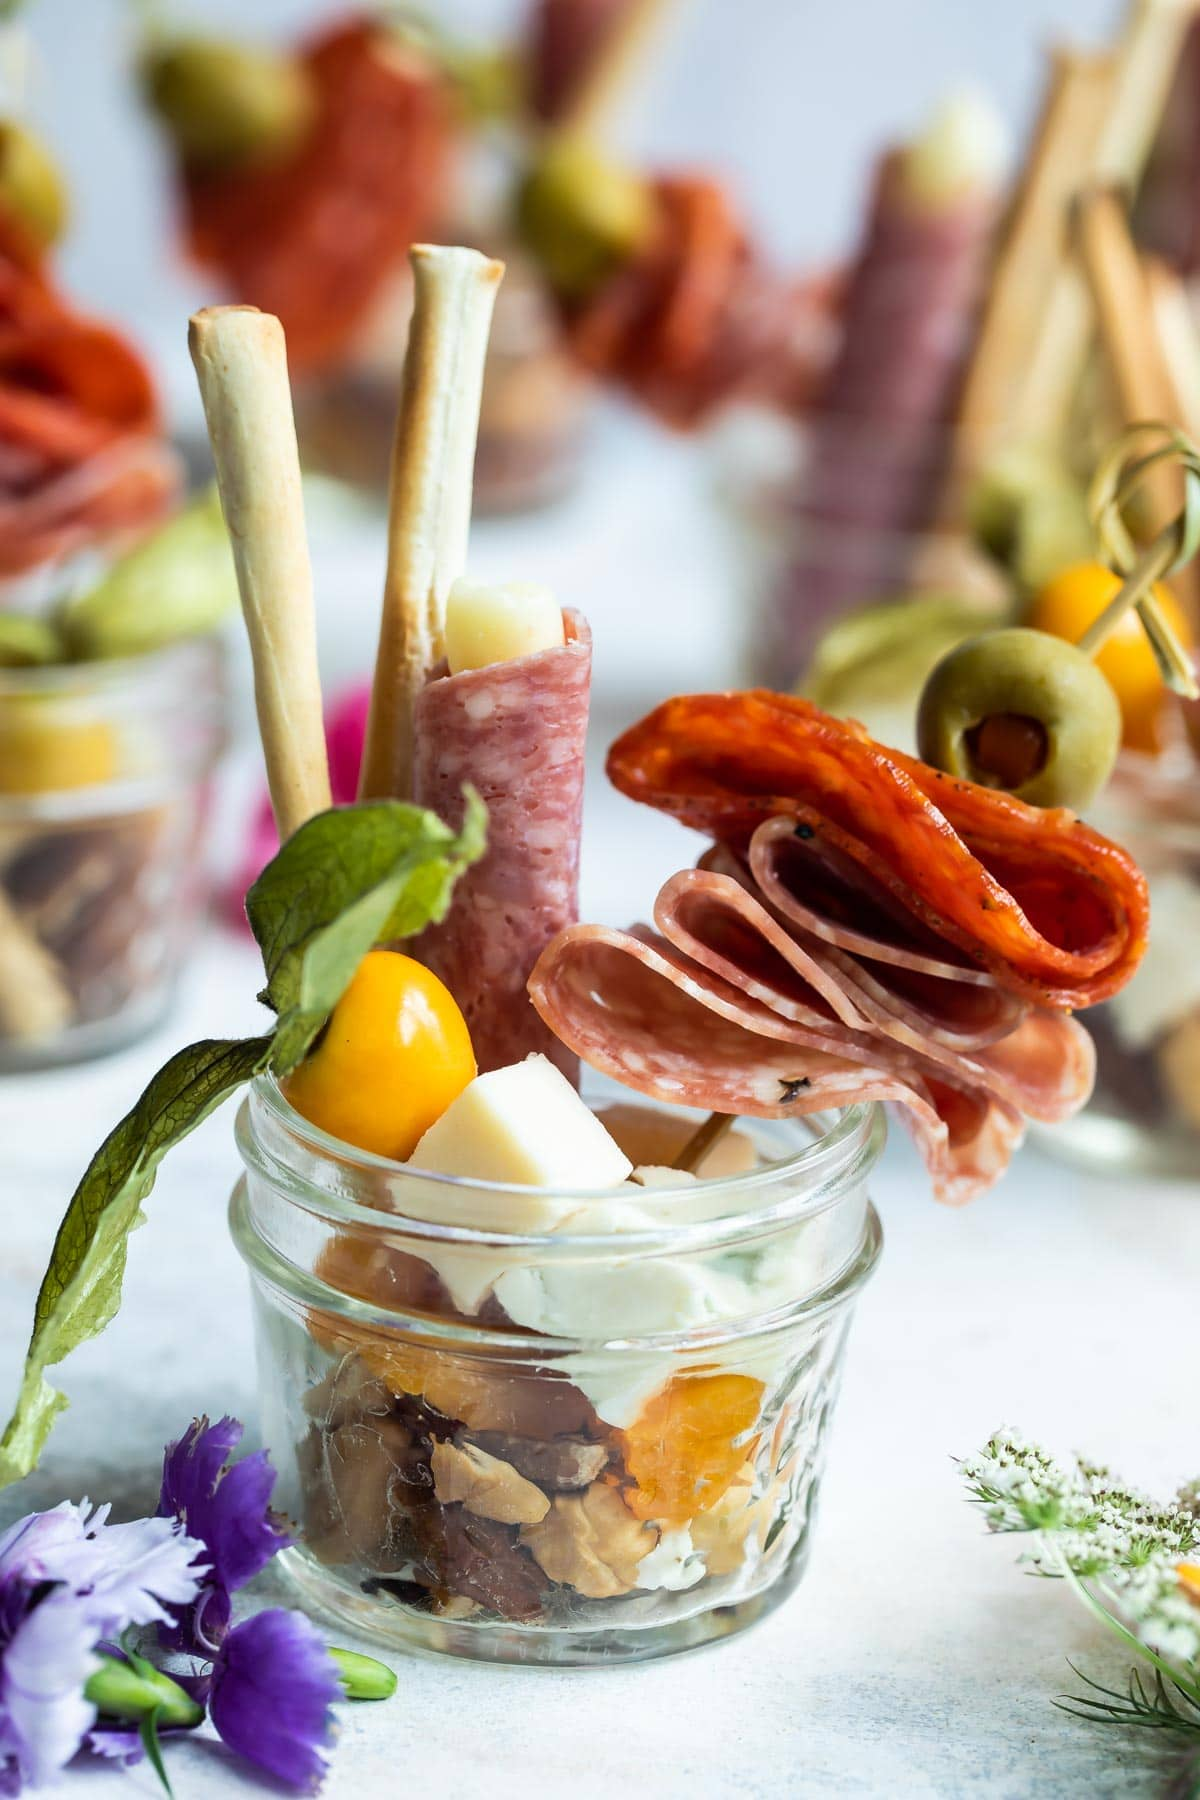 A mason jar filled with meats, olives, nuts, and breadsticks.